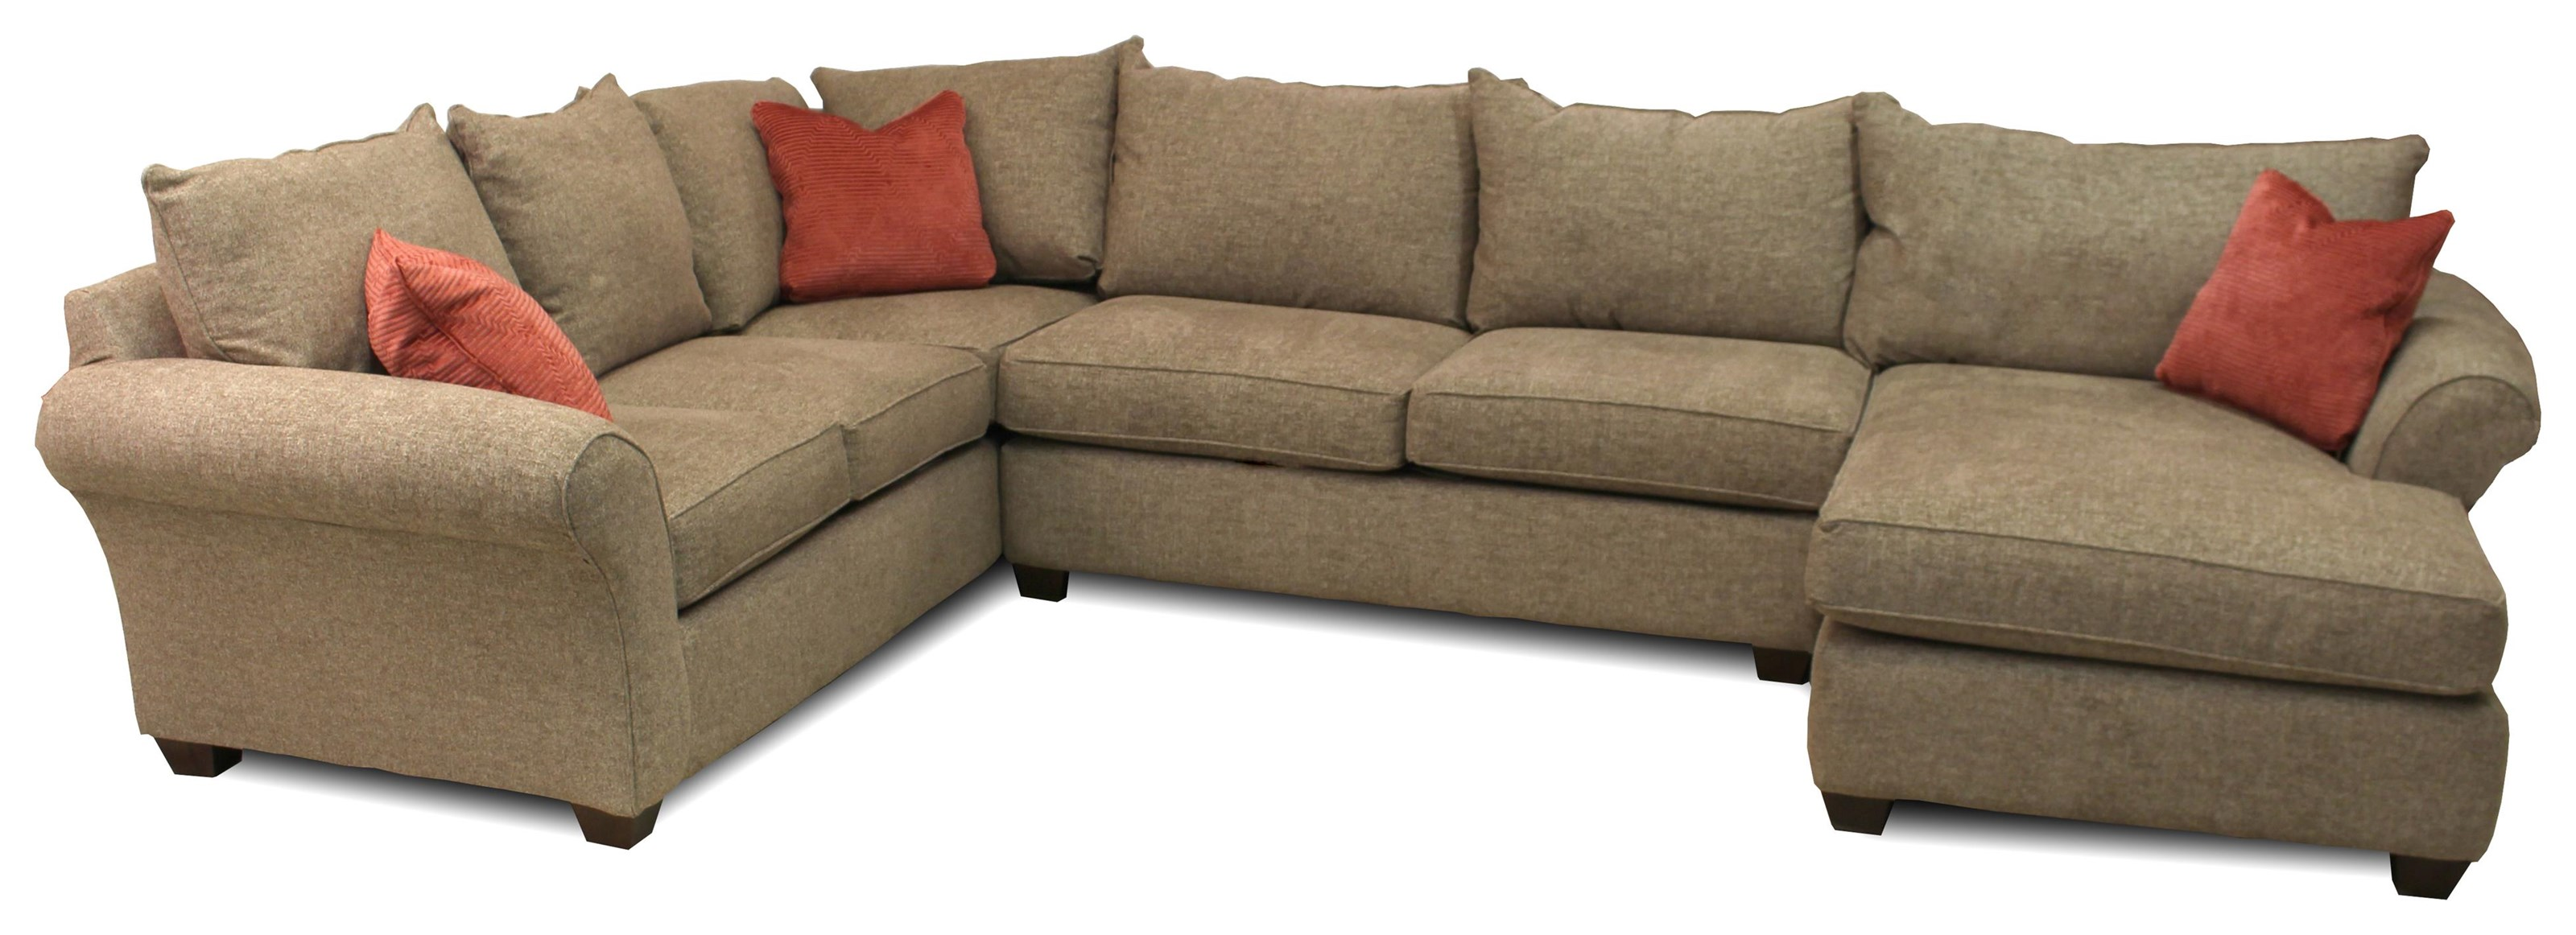 Clark 3-Piece Sectional by Metropia at Ruby Gordon Home